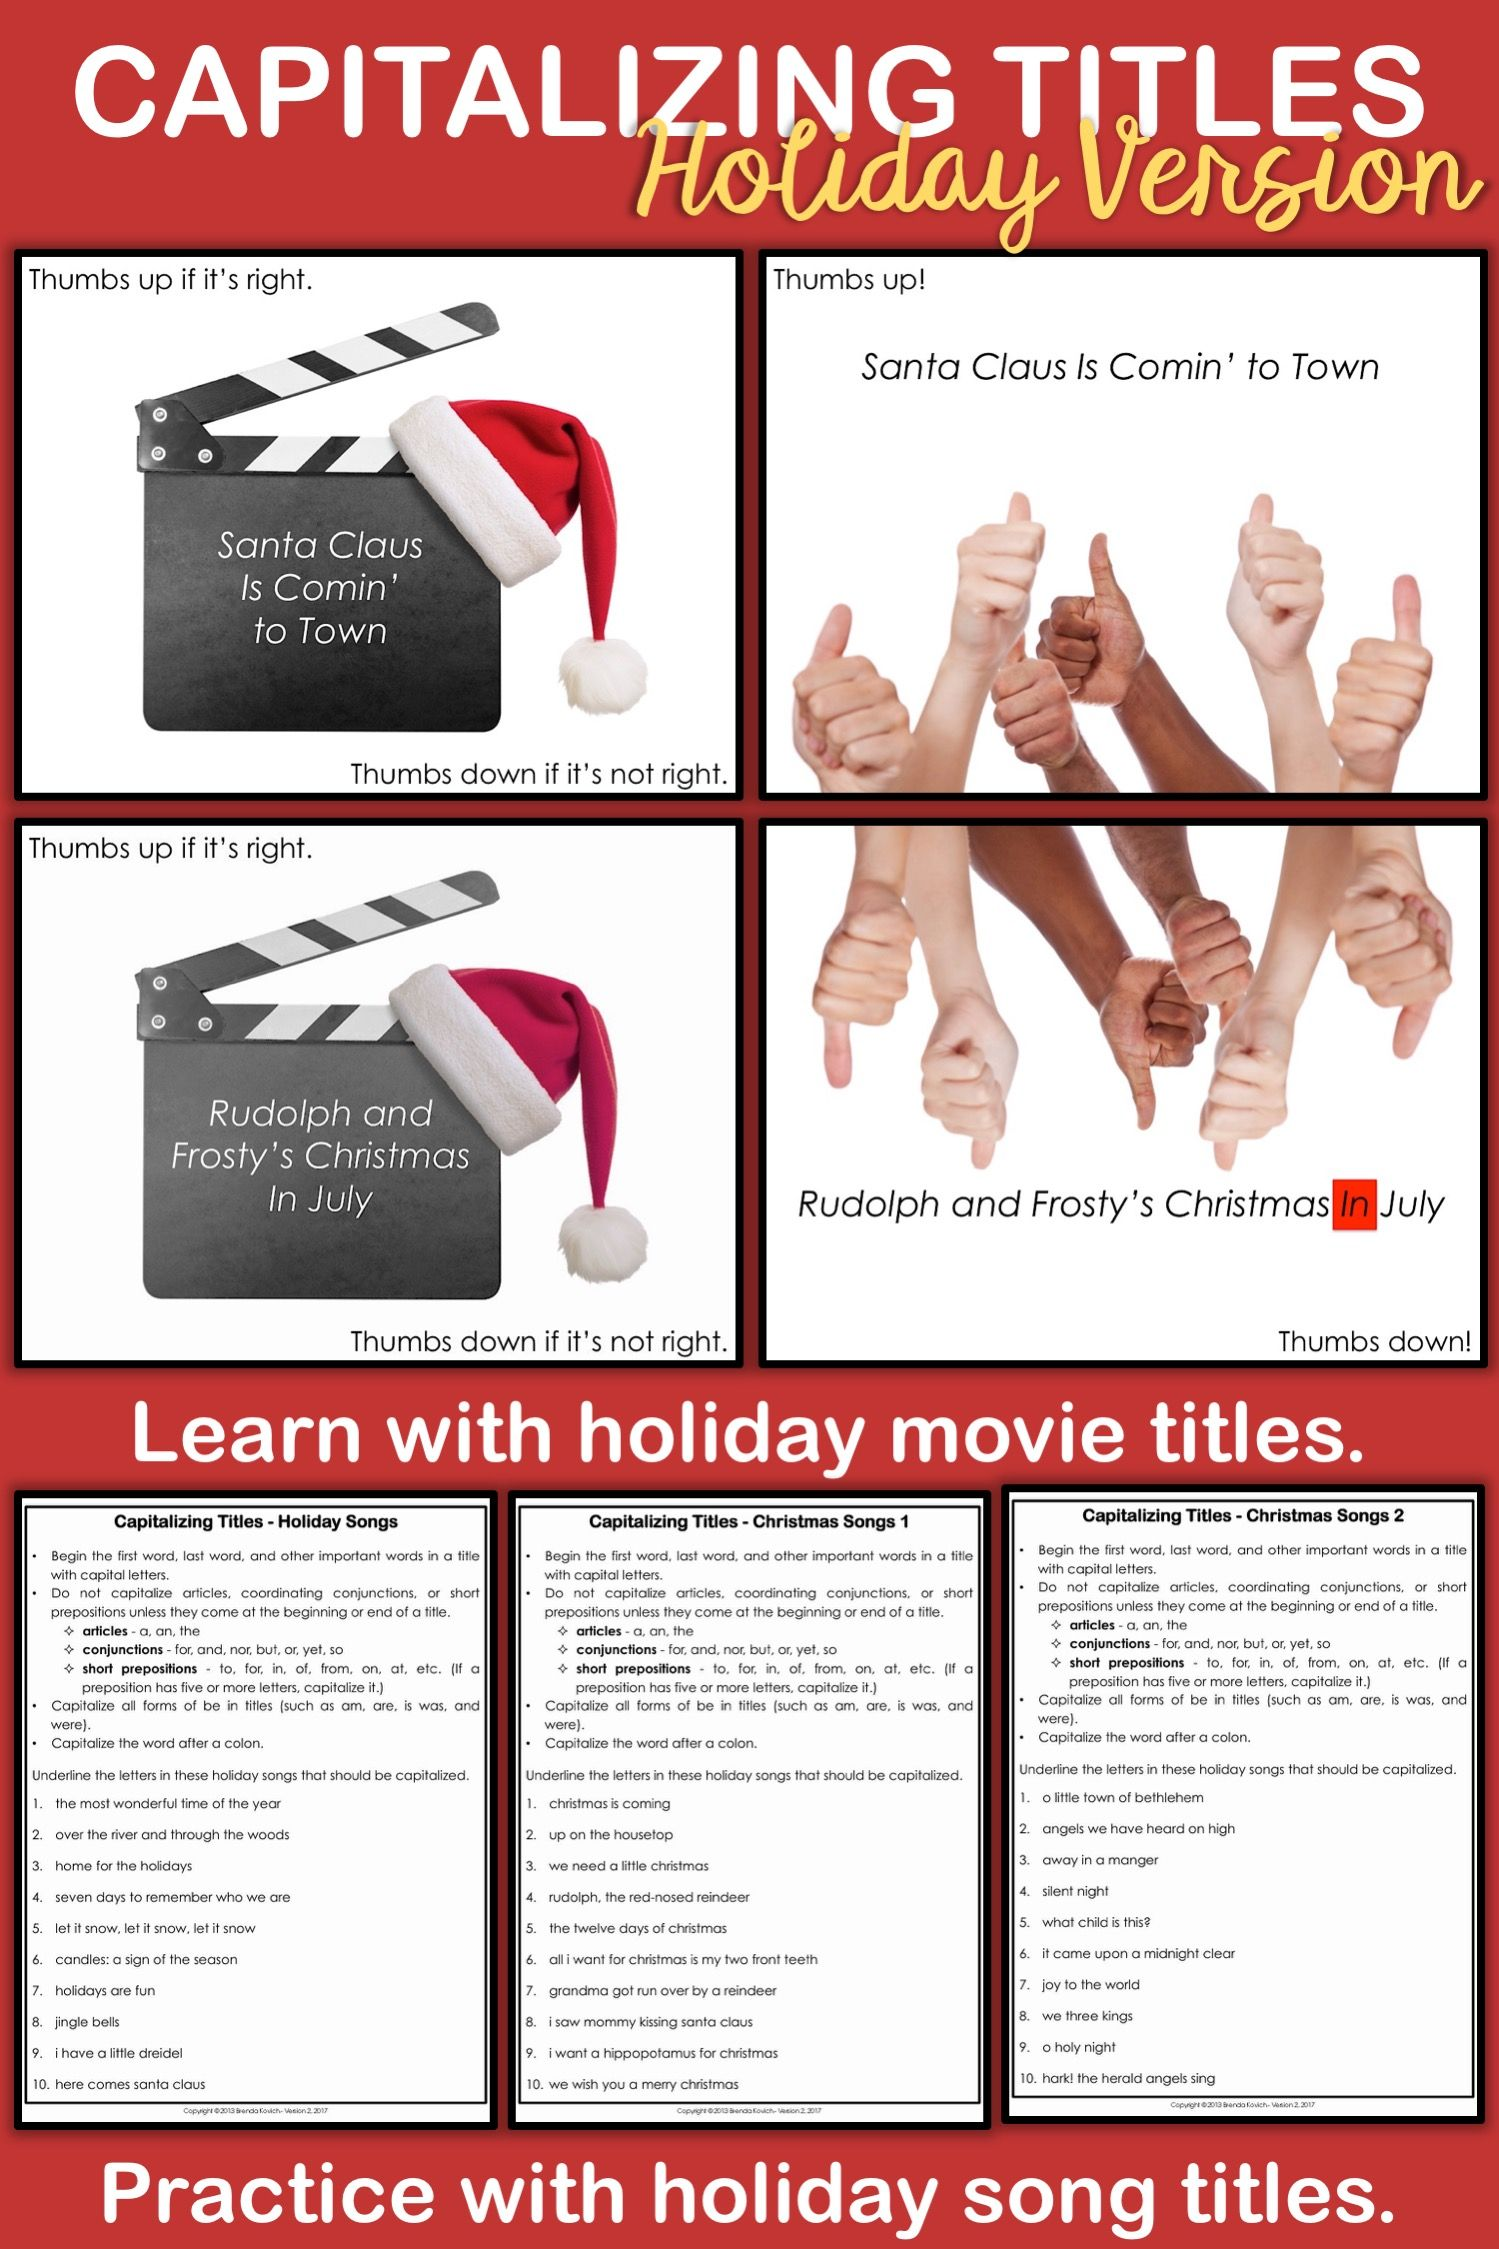 Capitalizing Titles - Holiday Version   Capitalization activities [ 2249 x 1499 Pixel ]